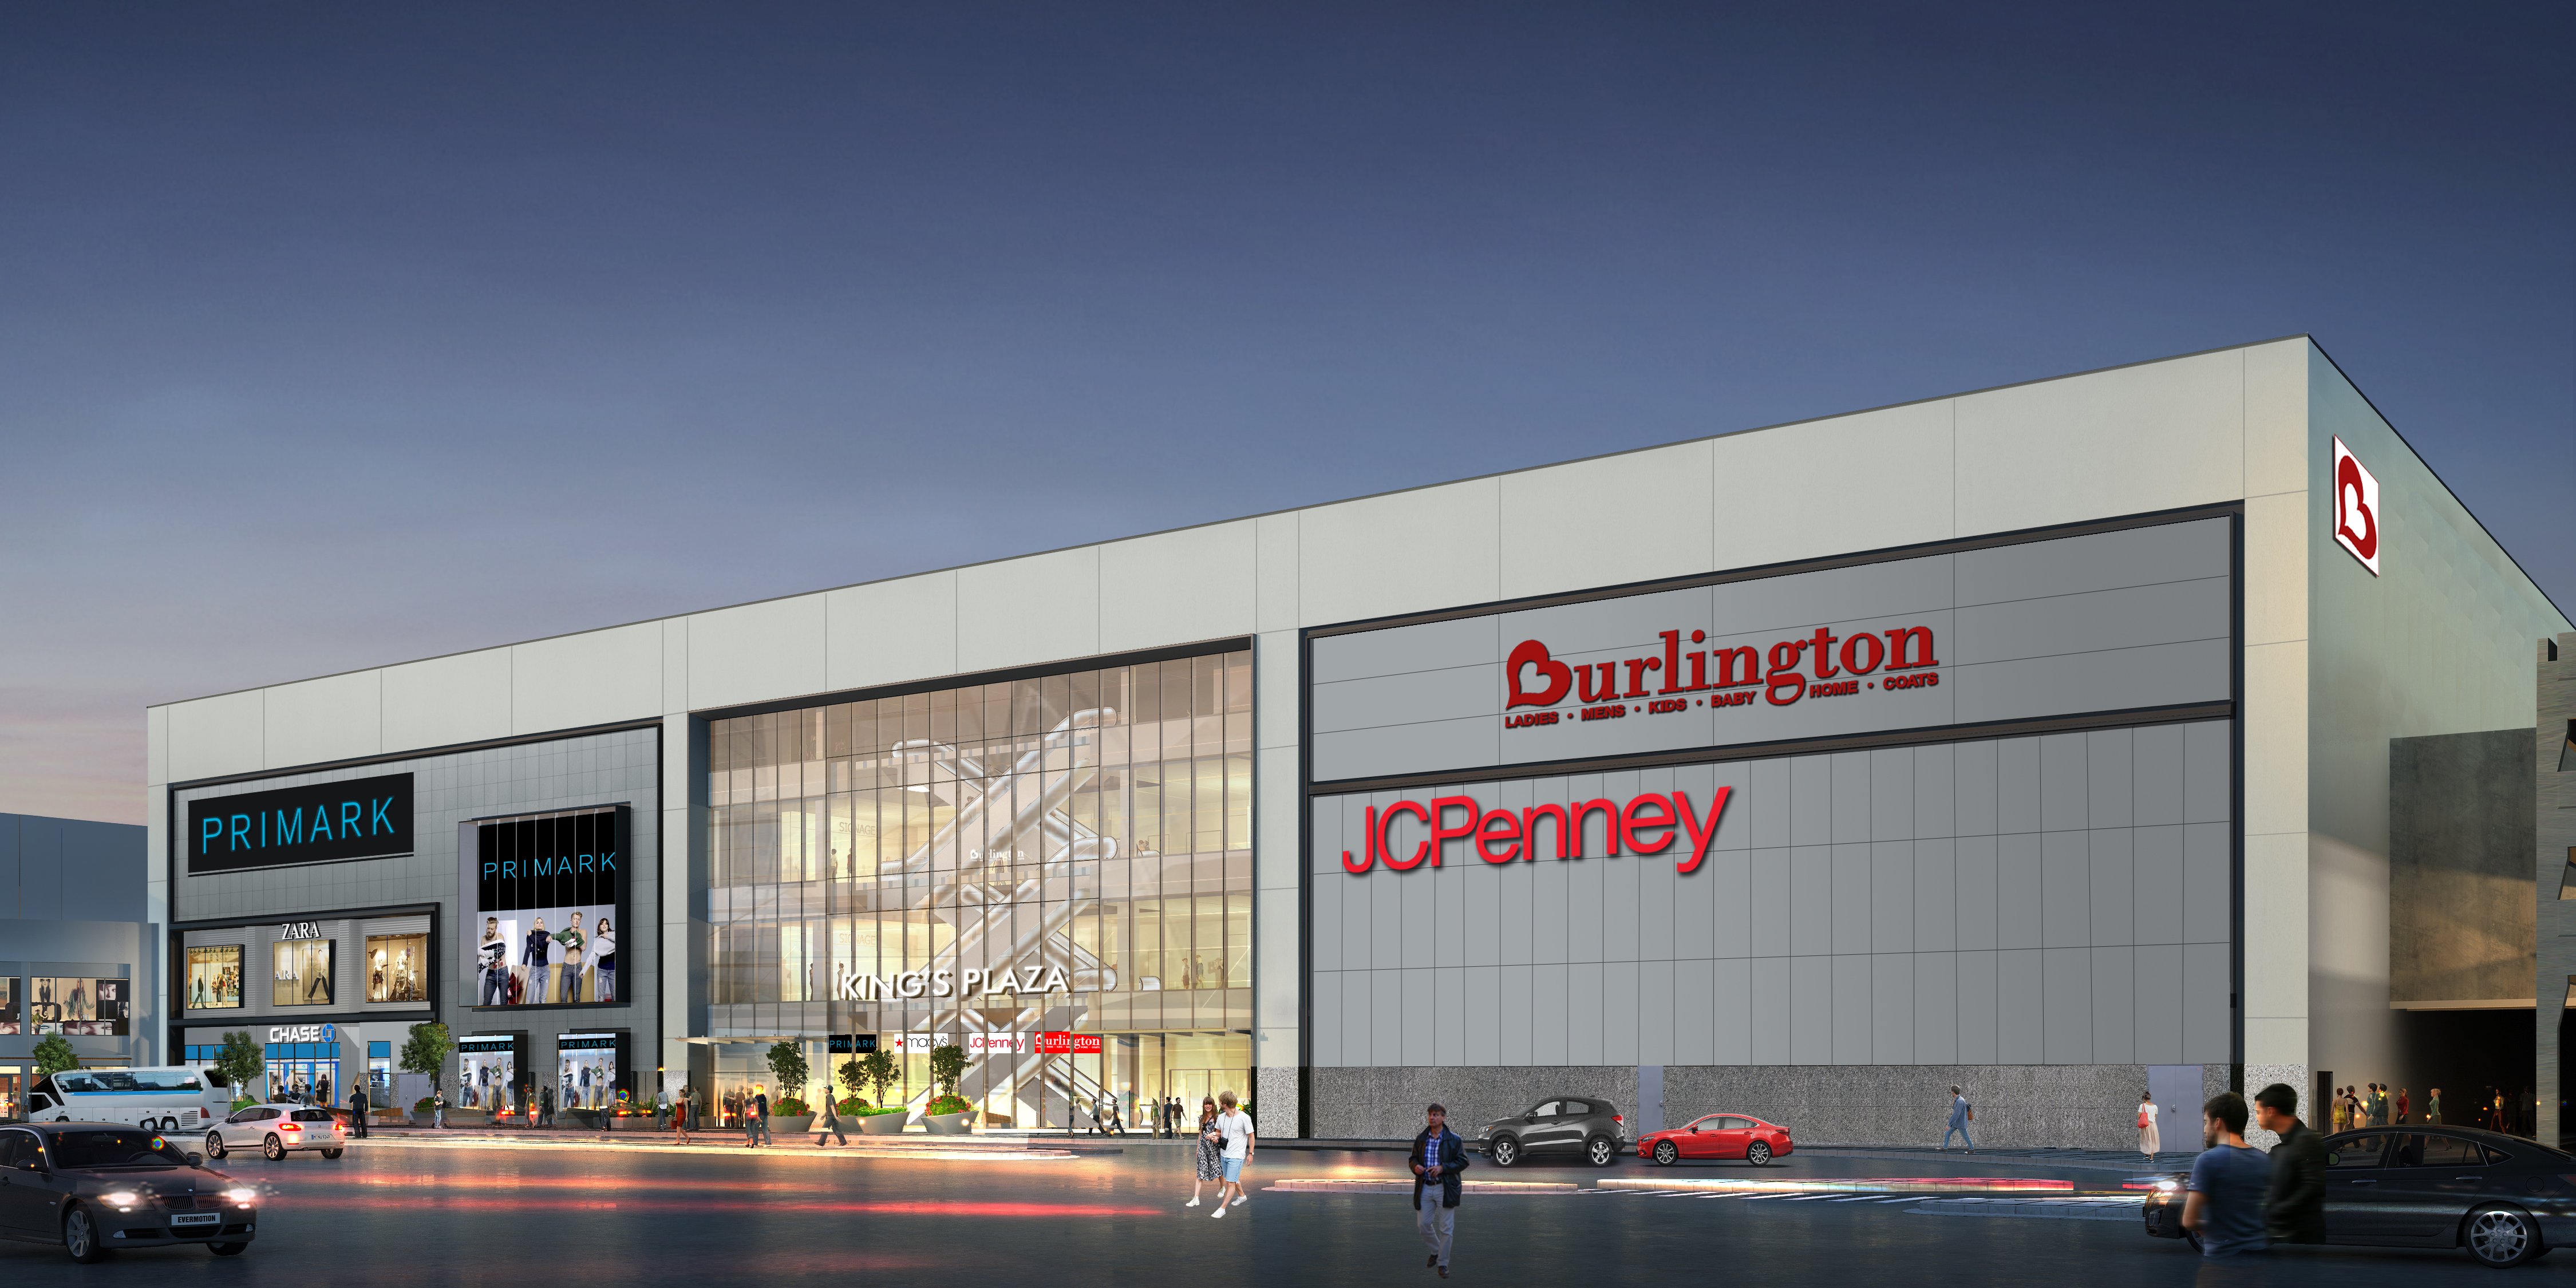 Rendering of the Kings Plaza Flatbush Ave facade